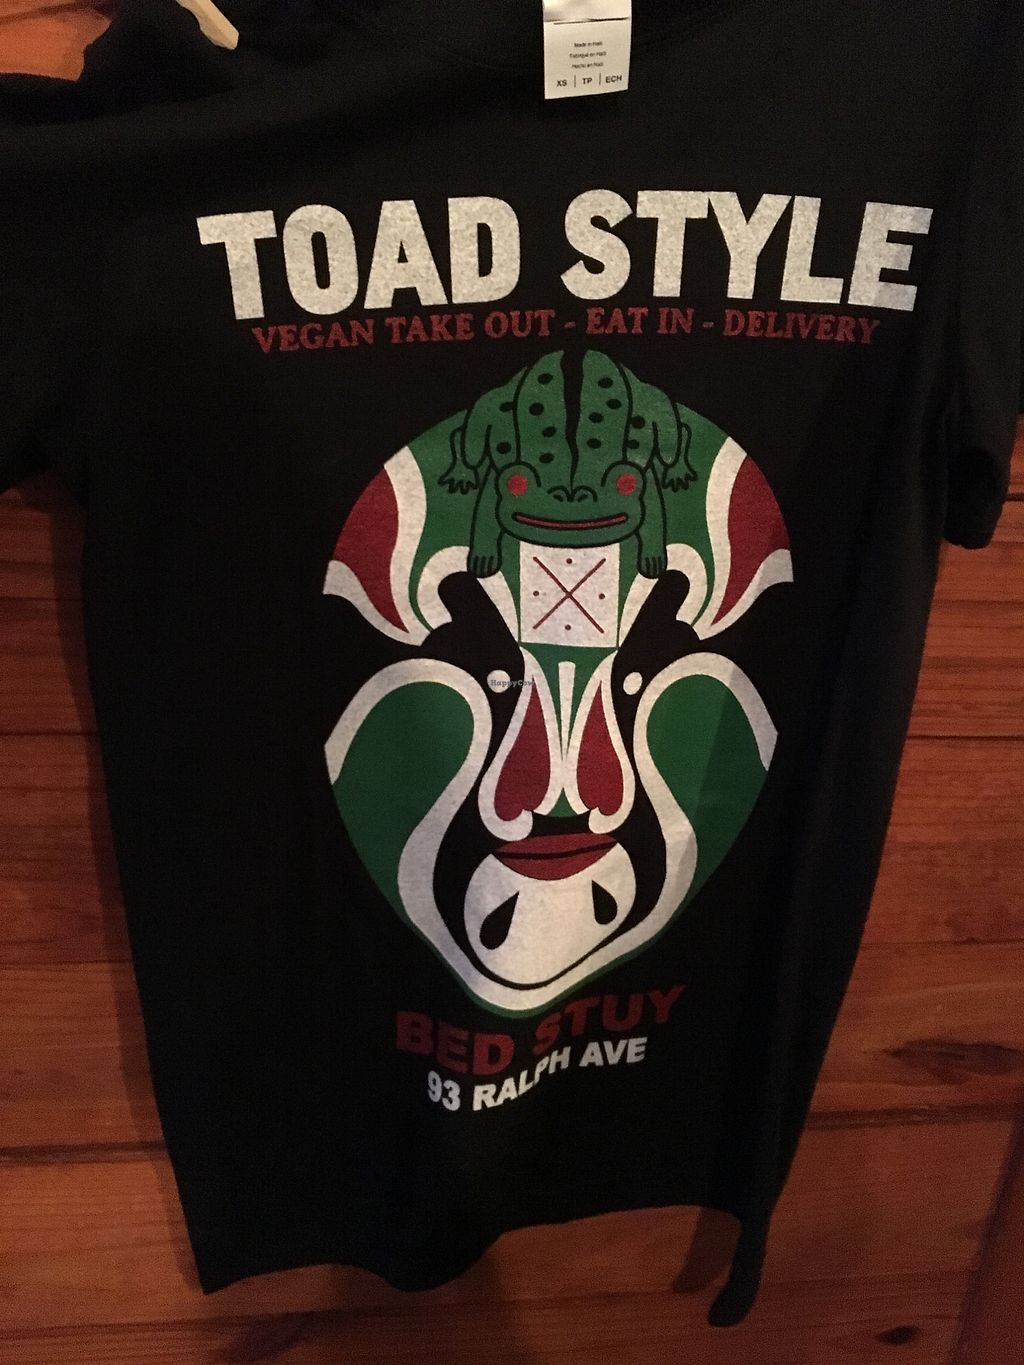 """Photo of Toad Style  by <a href=""""/members/profile/770veg"""">770veg</a> <br/>Today style <br/> February 27, 2018  - <a href='/contact/abuse/image/62246/364491'>Report</a>"""